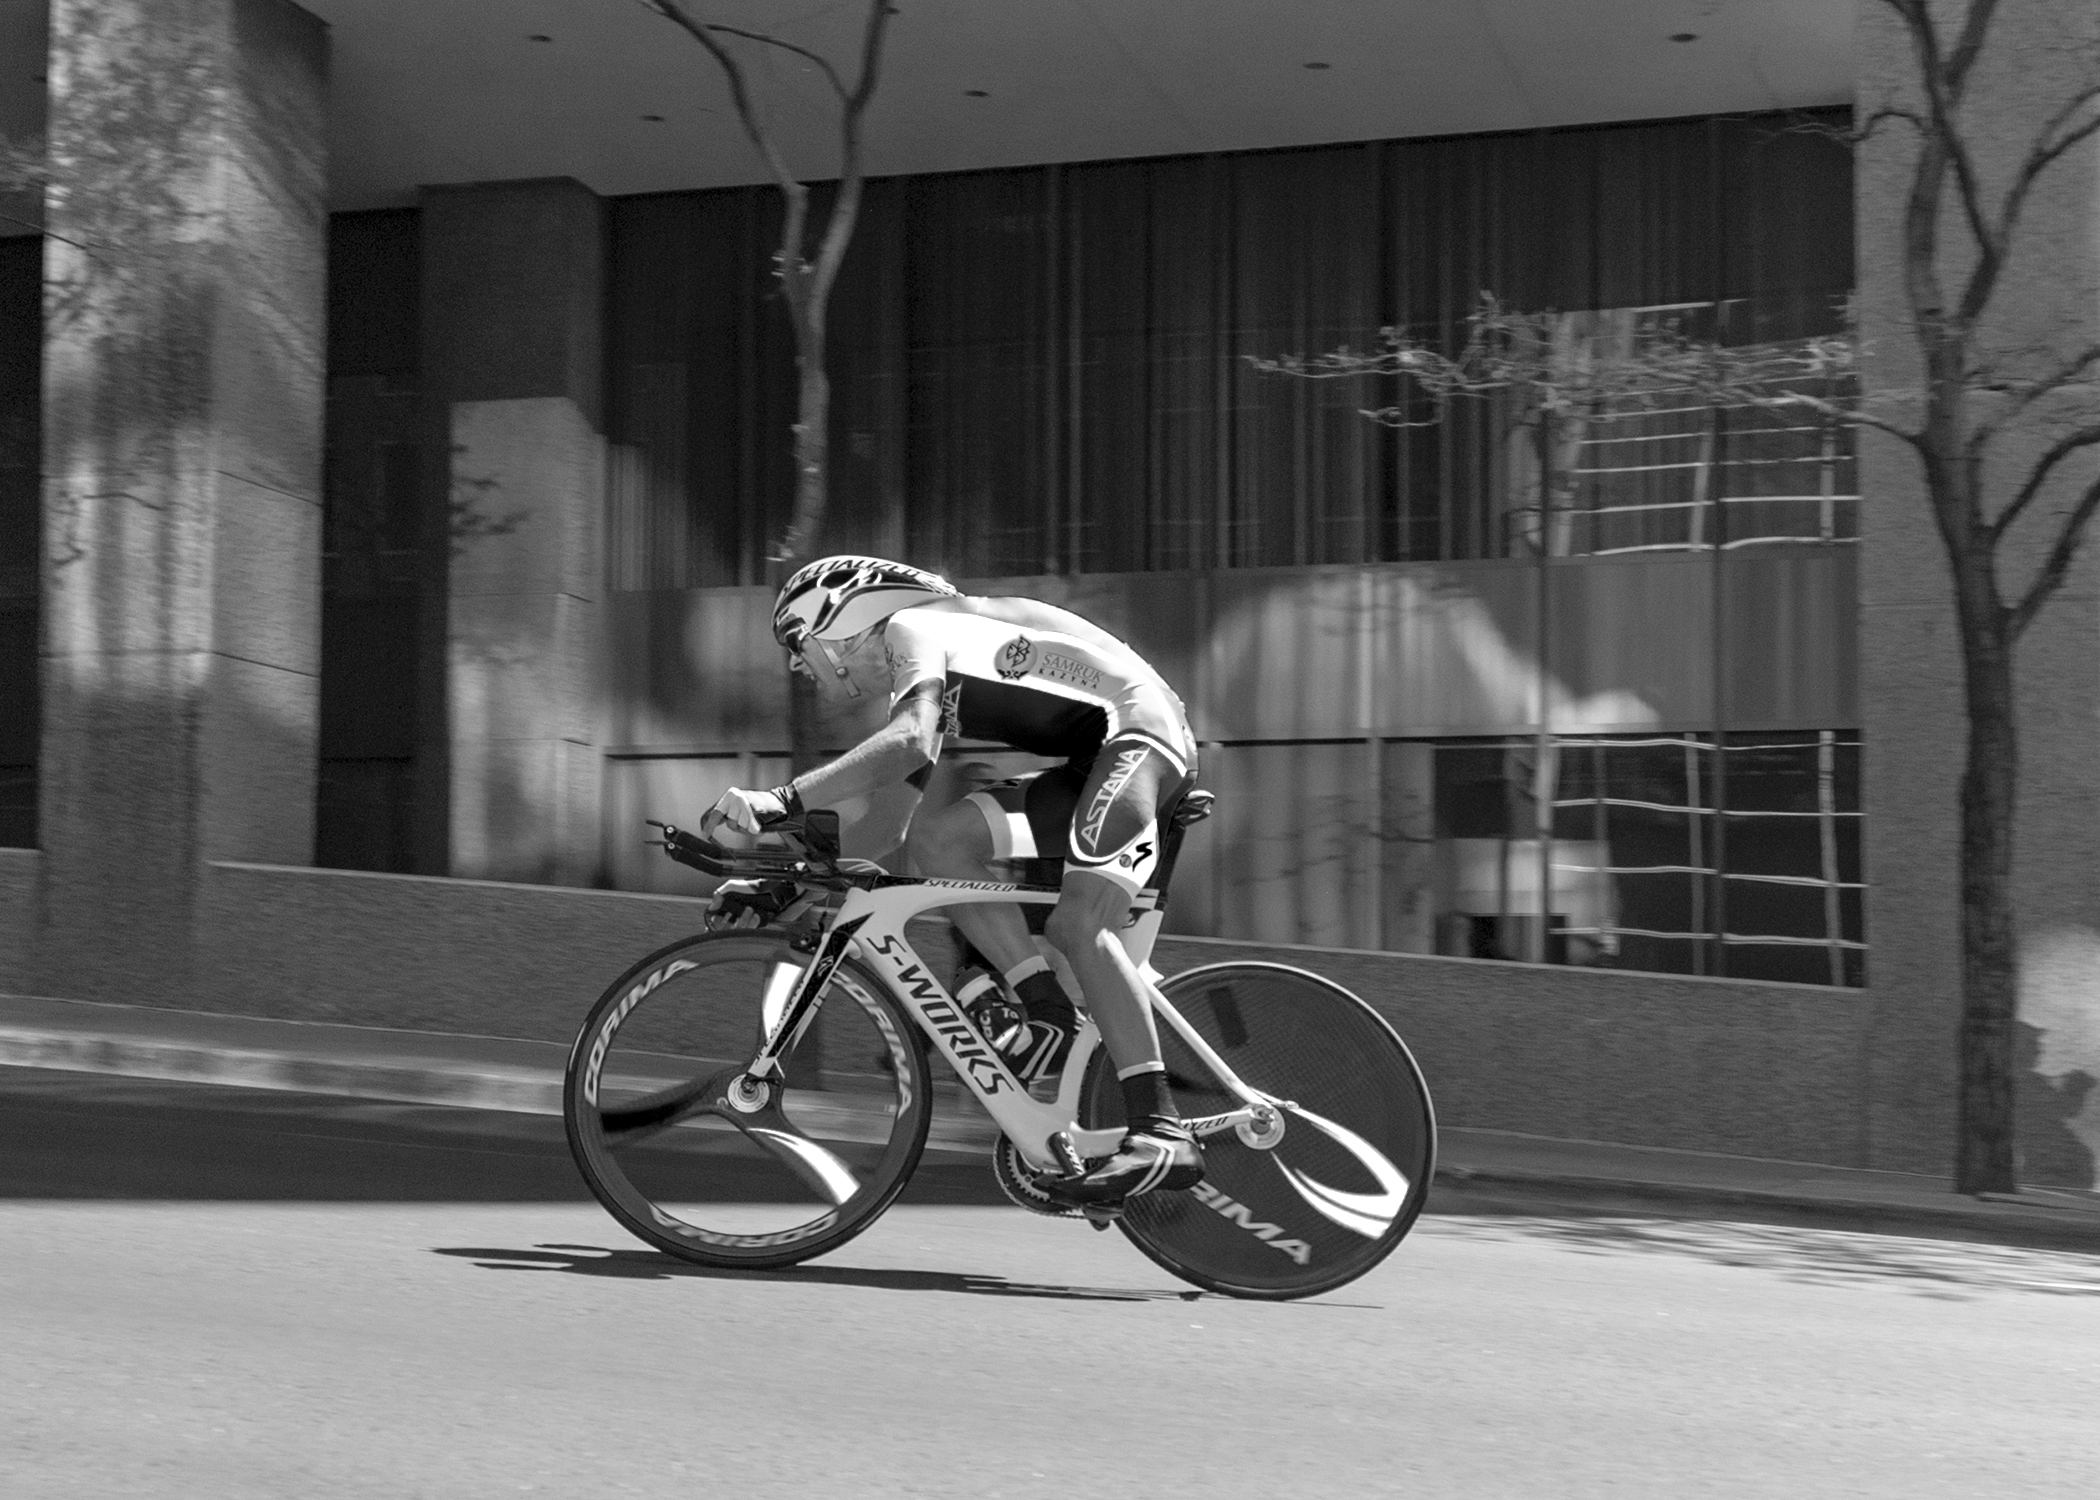 Astana team racer at speed during the individual Time Trail in  downtown Denver at the Tour of Colorado.